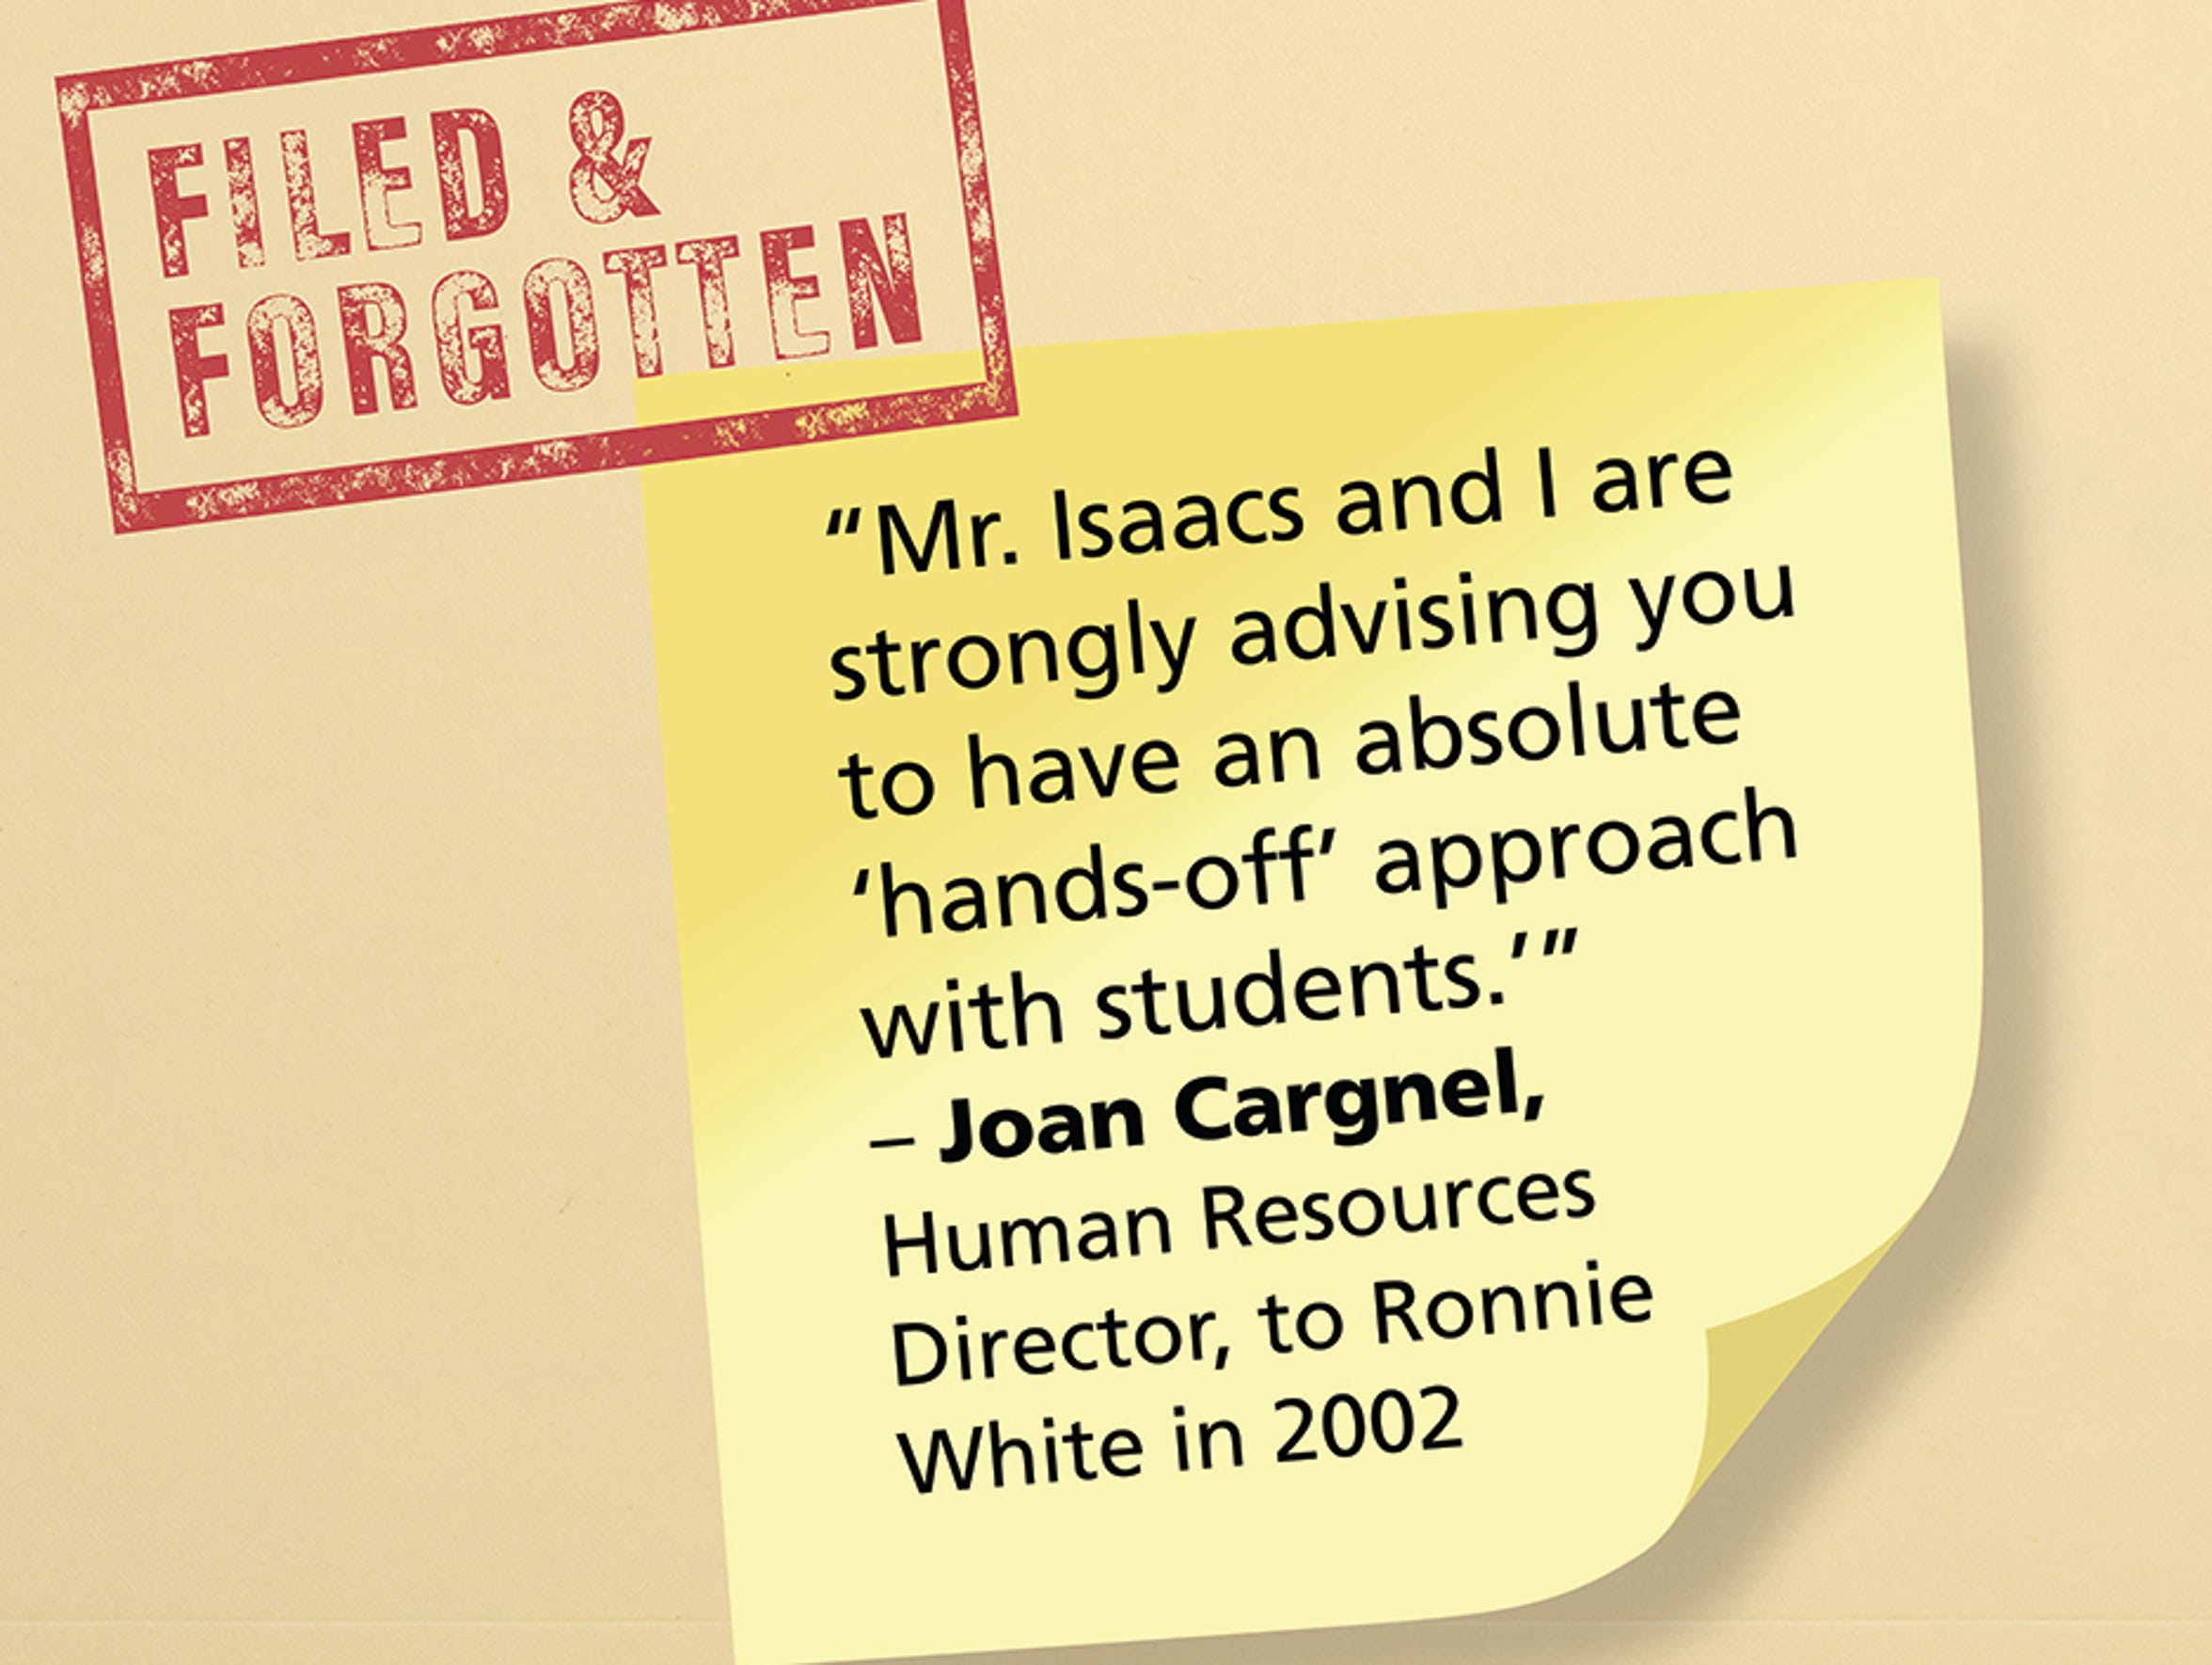 Quote from HR memo to Ronnie White.